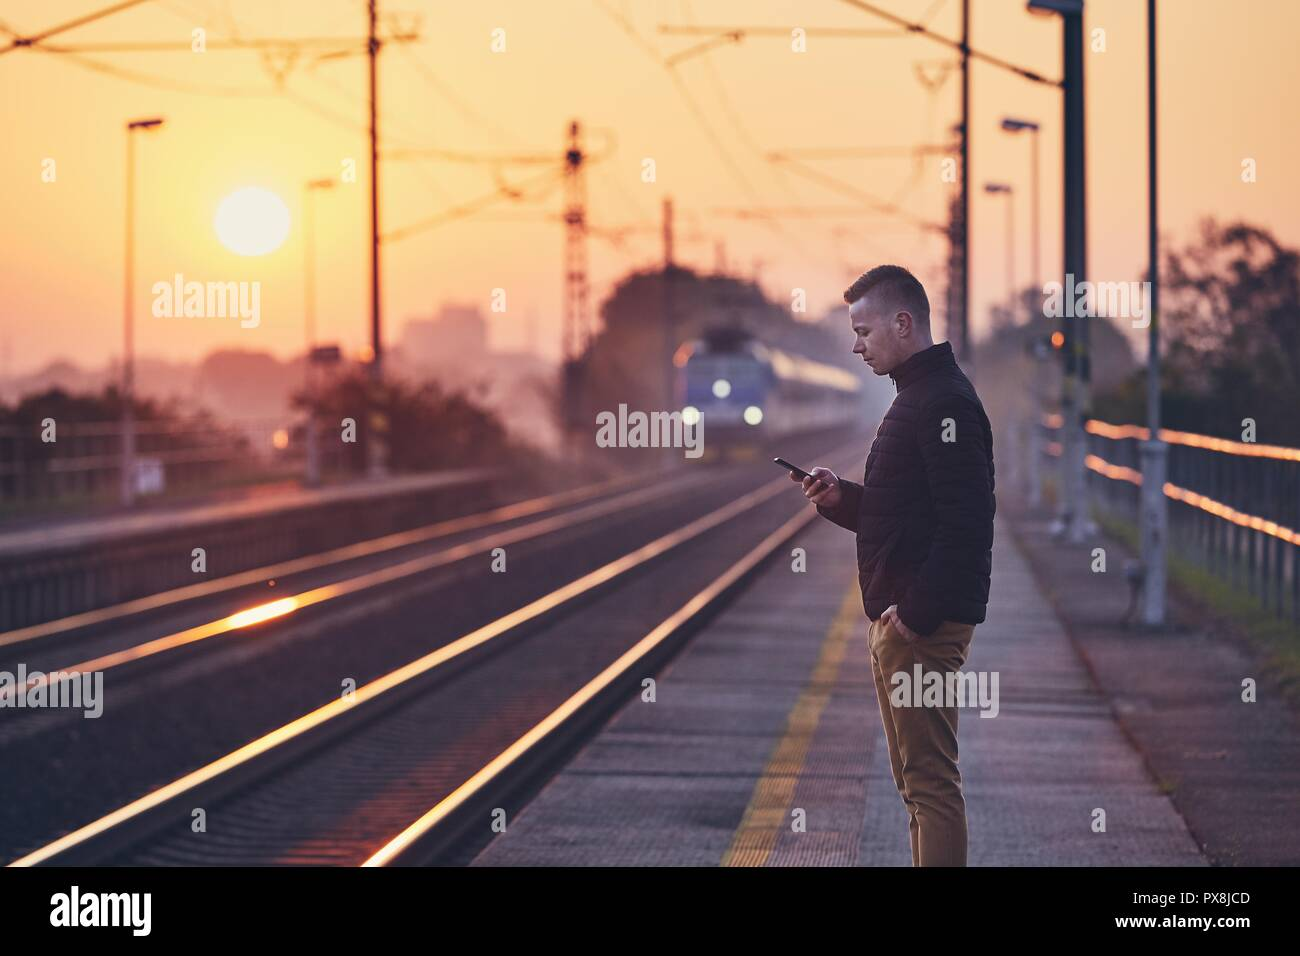 Young man waiting at railroad station platform and using smart phone against commuting train at sunrise. - Stock Image